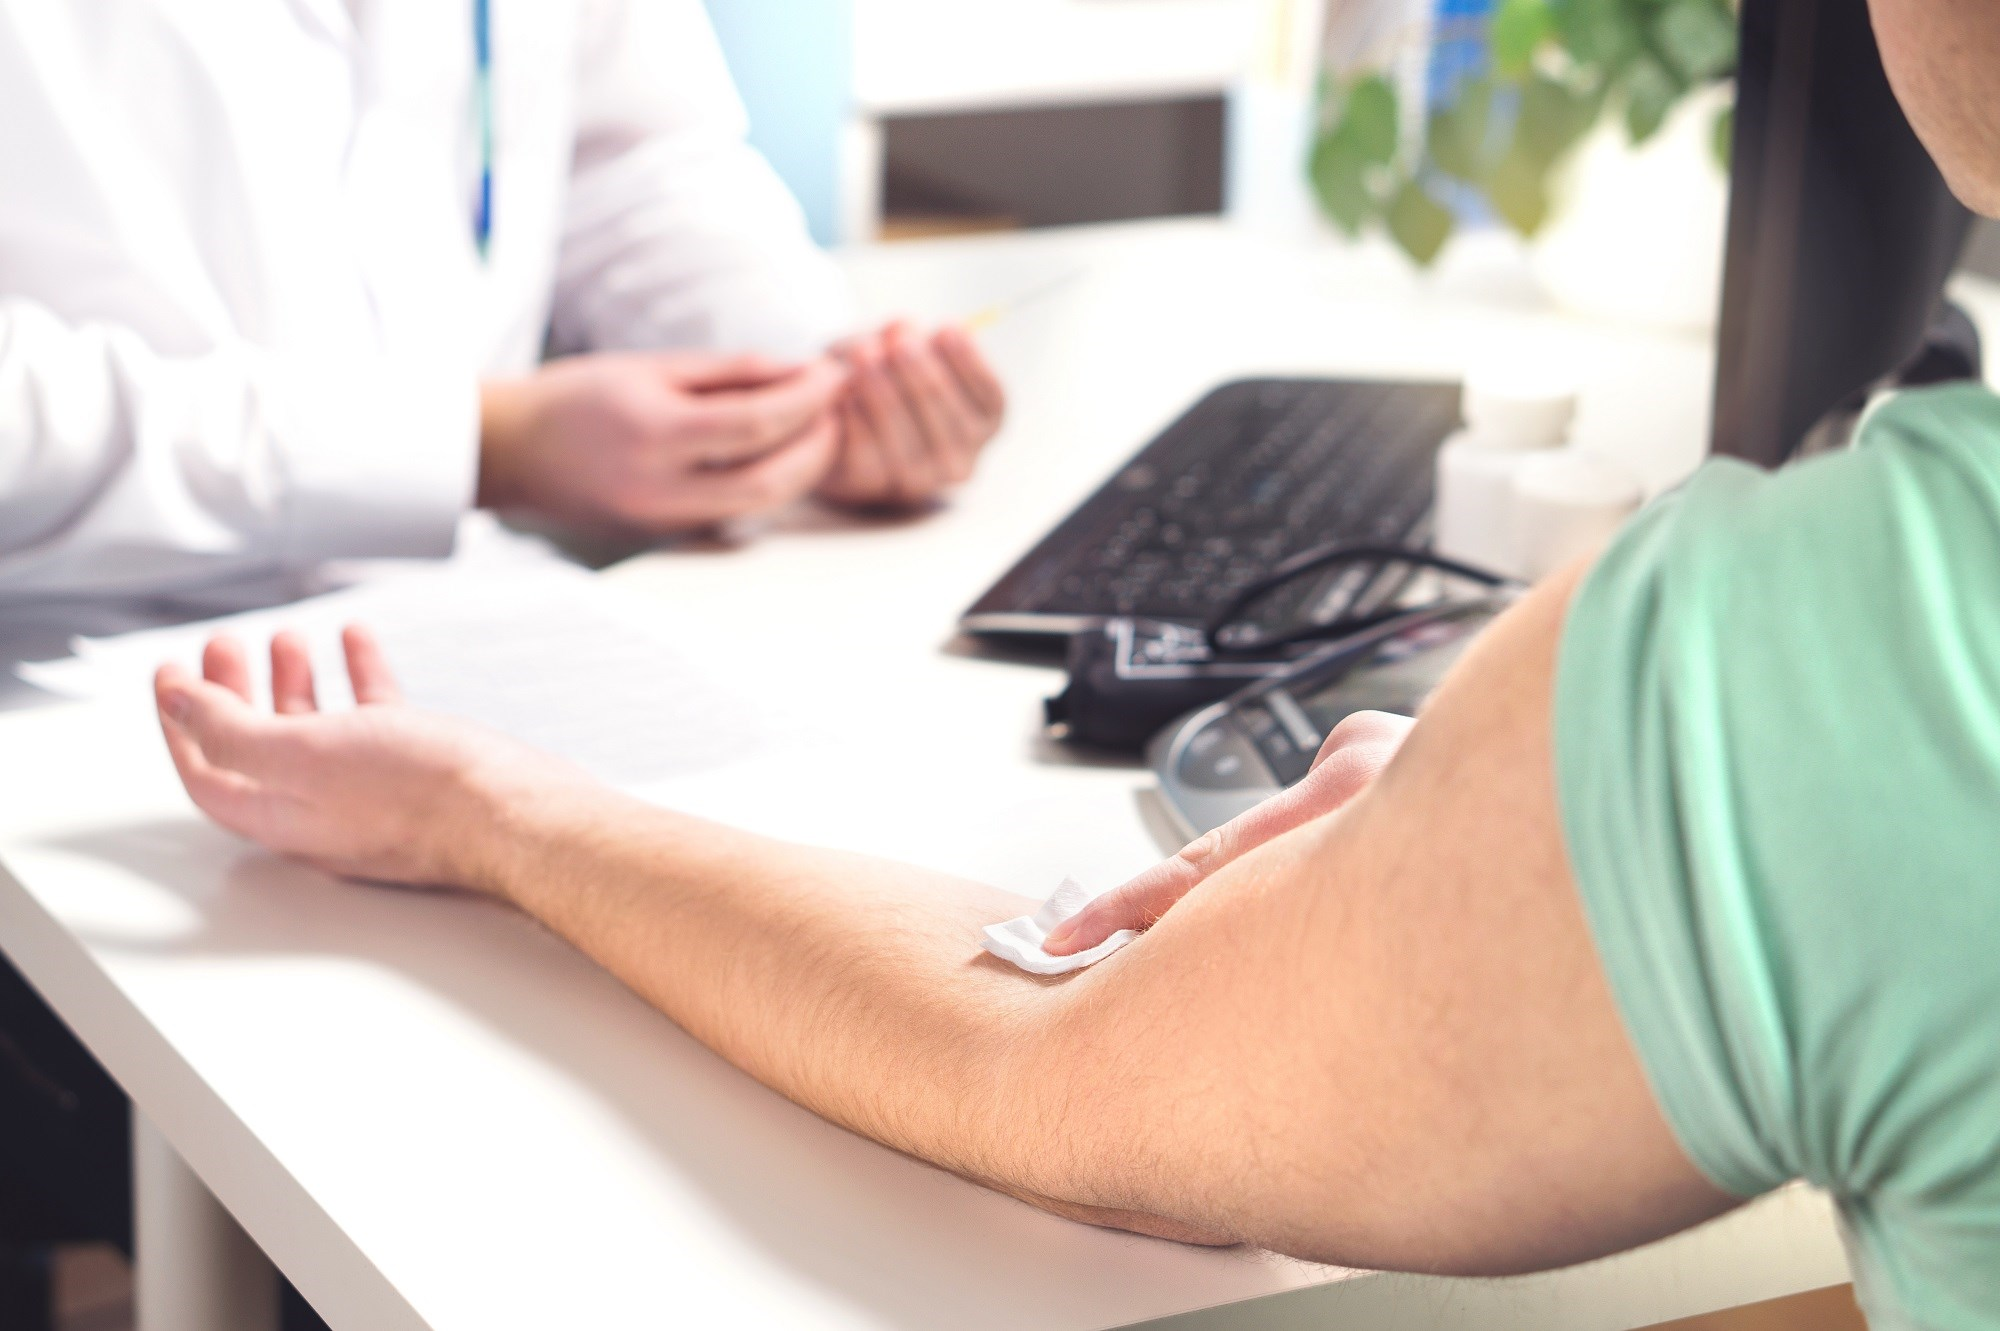 Patient Navigation Associated With Positive Outcomes in HIV